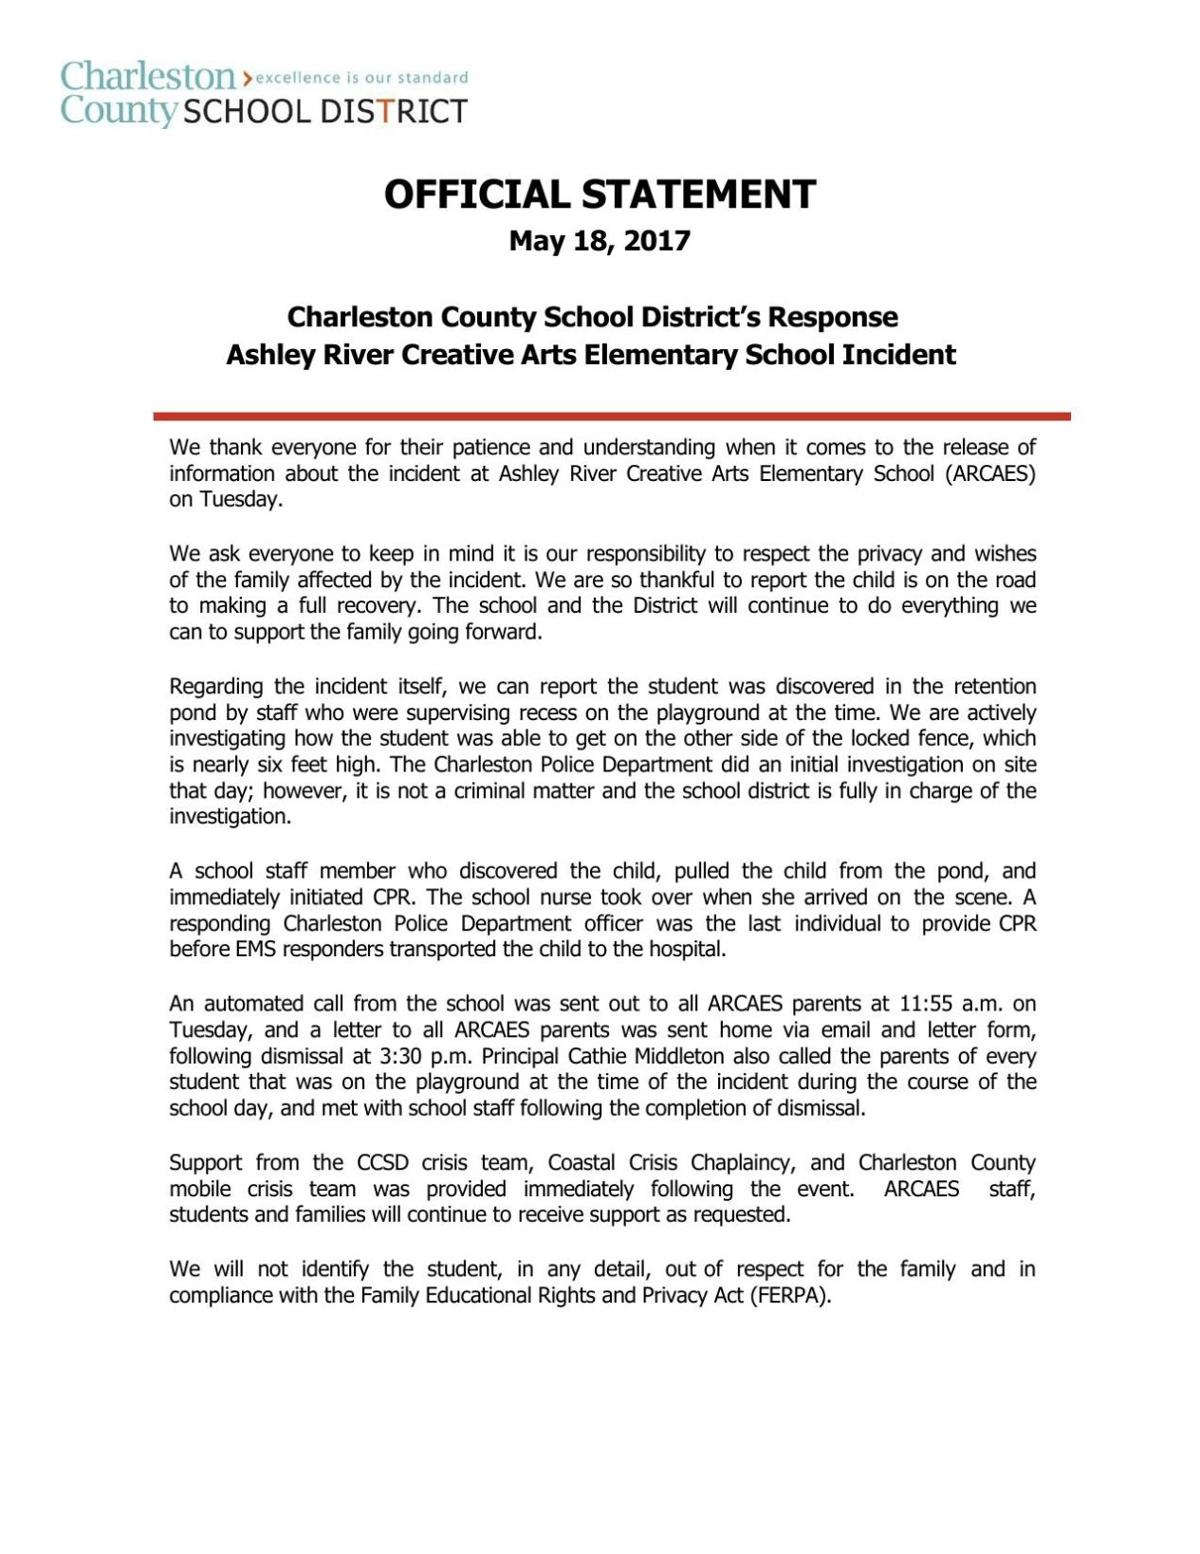 statement supporting application for enforcement warrant